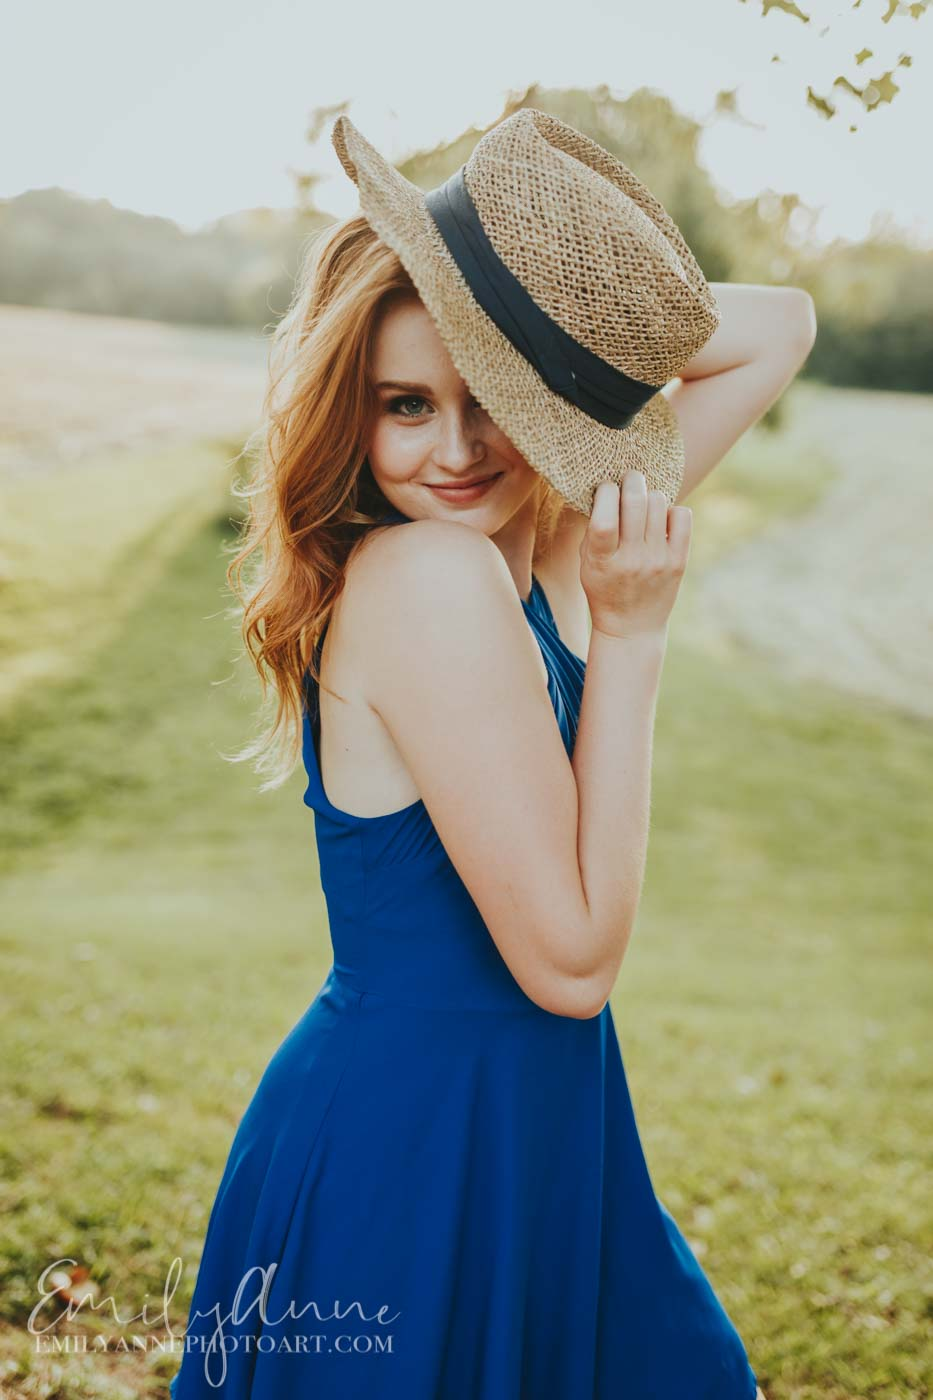 cute senior pics by Emily Anne Photo Art girl in golden field with cute hat!